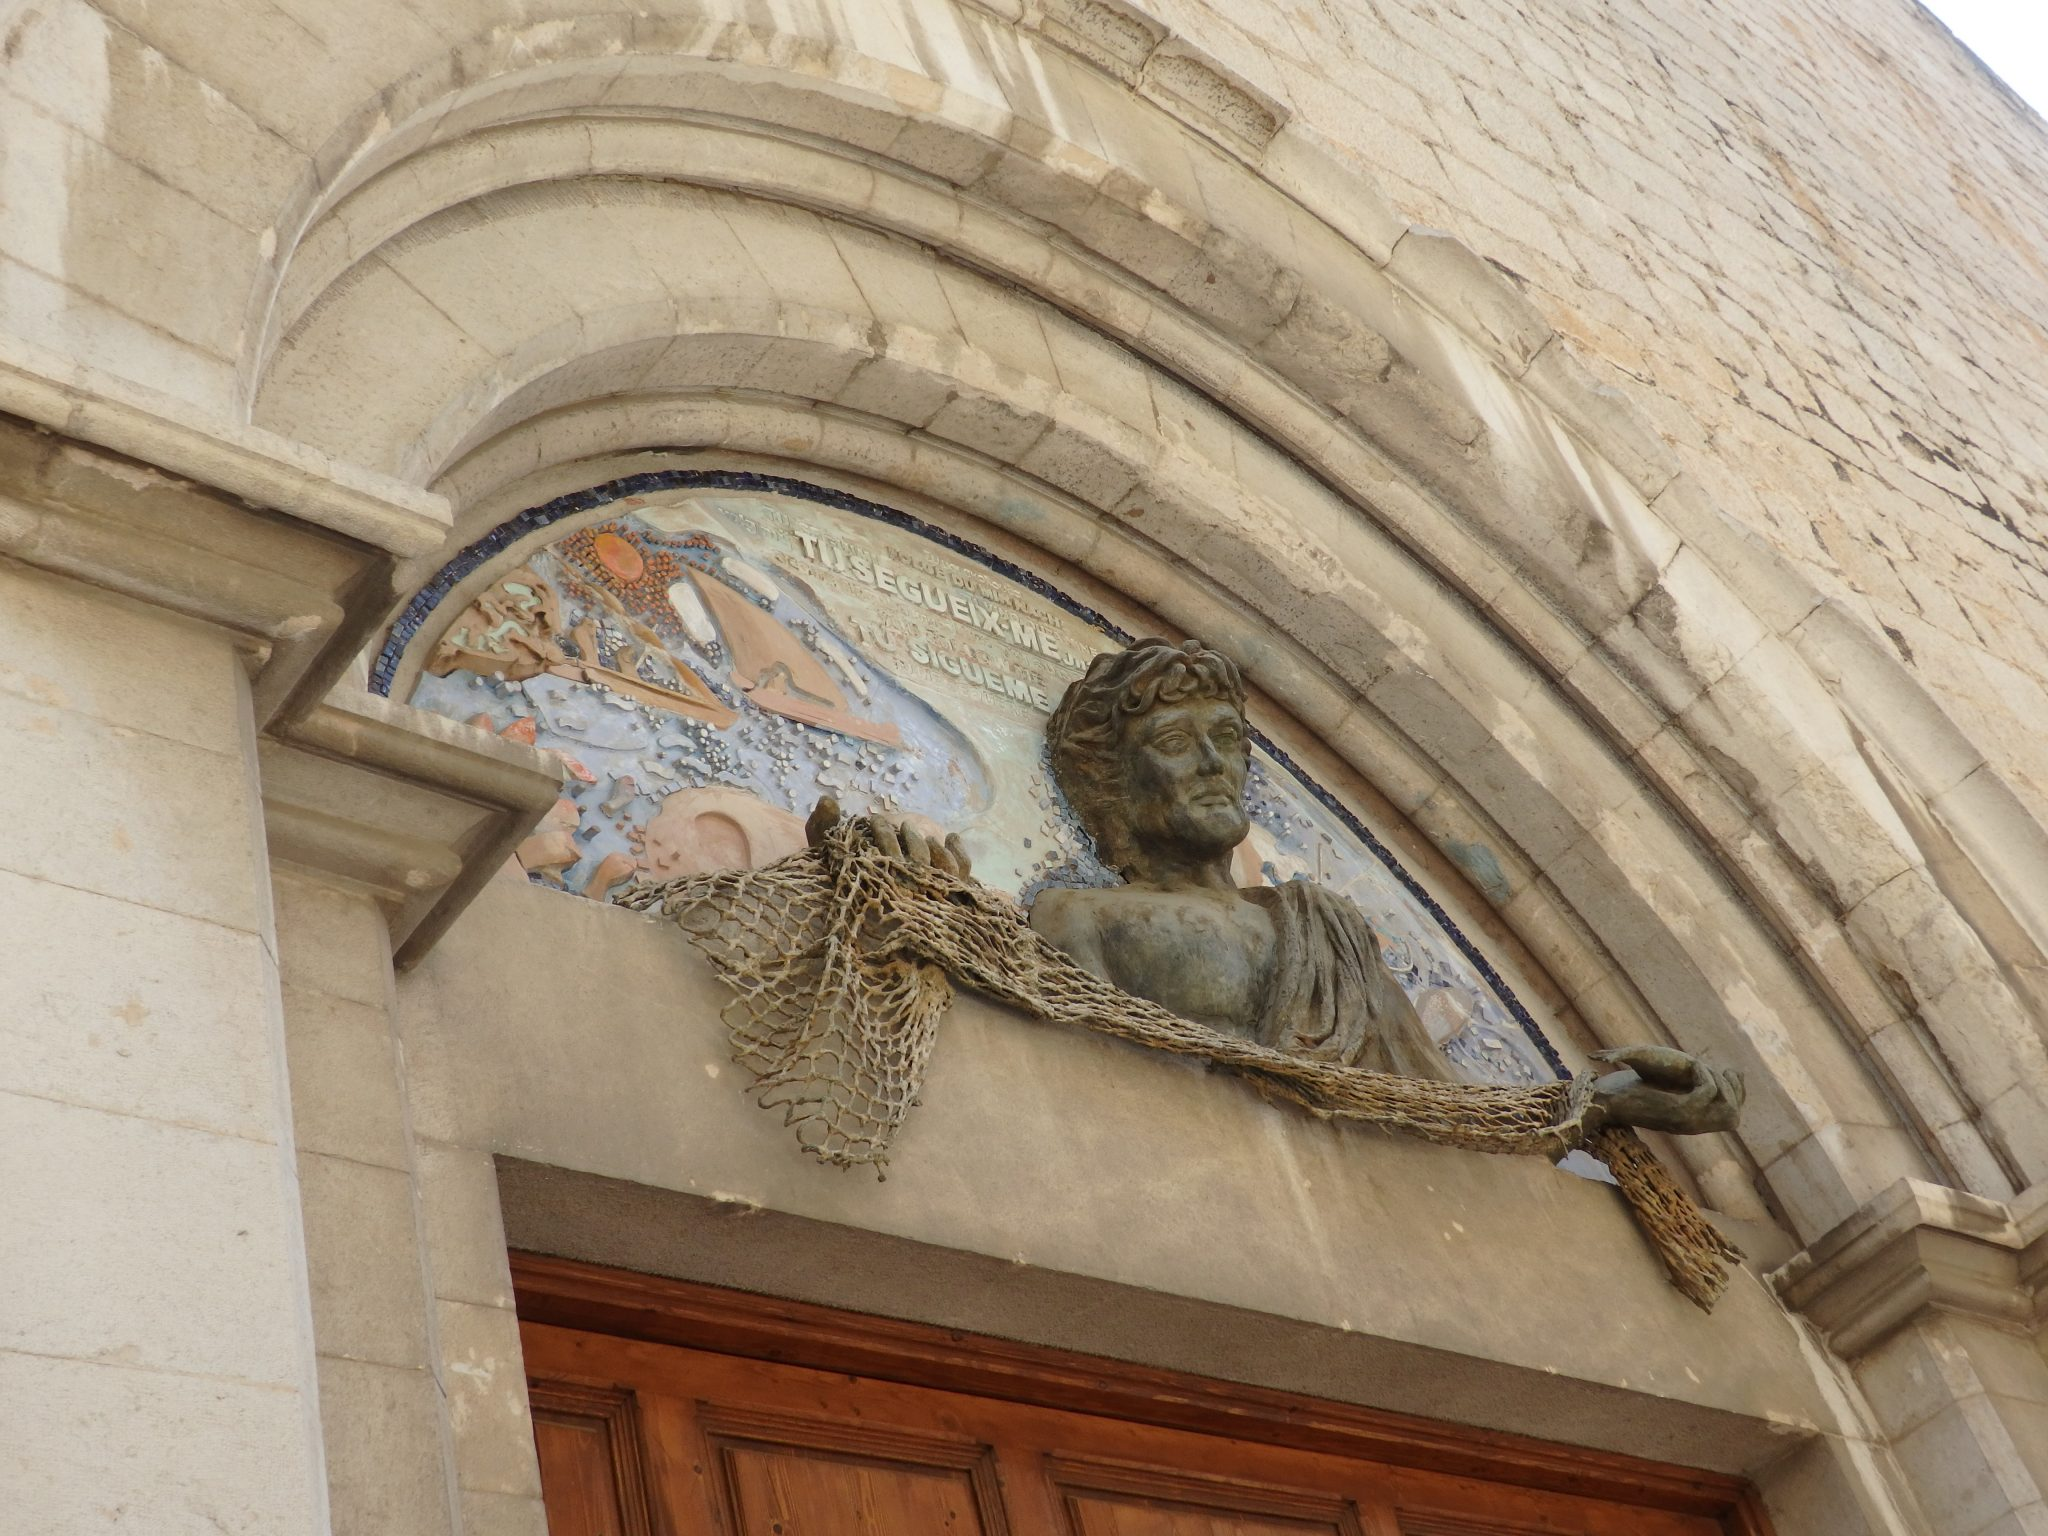 above the entrance to the church of Sant Pere in Figueres, Spain